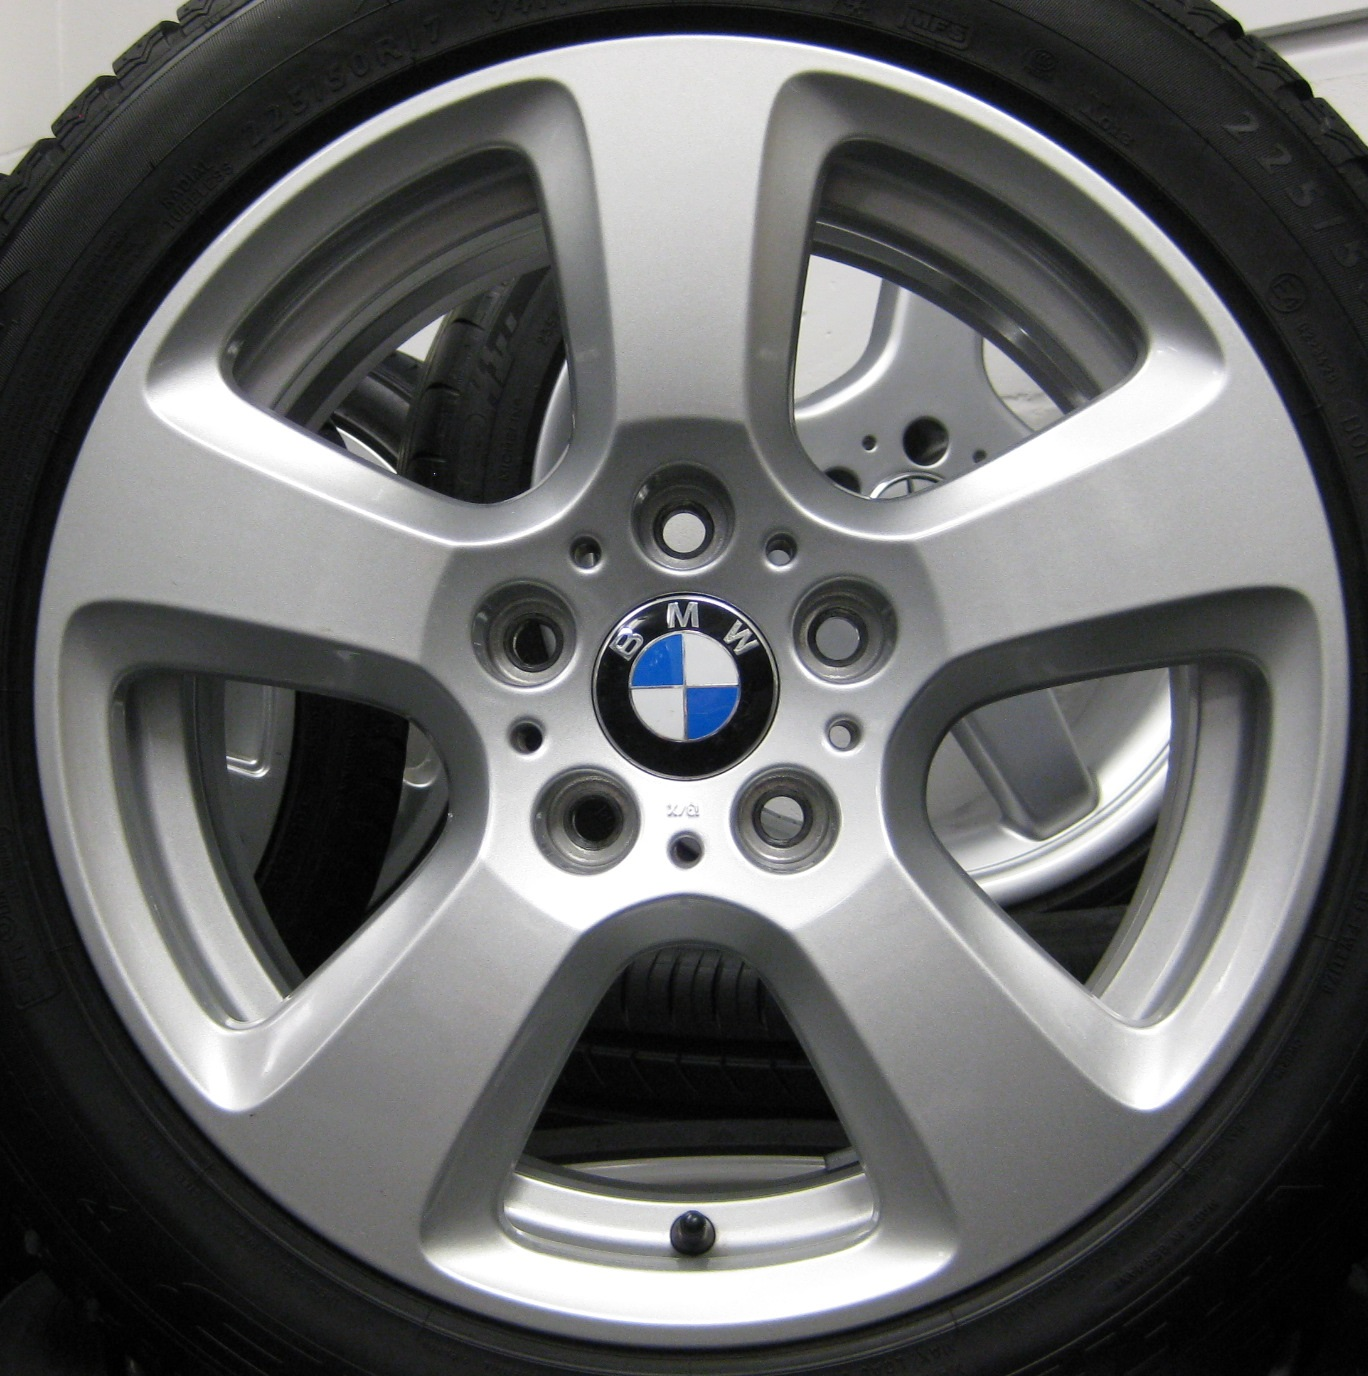 "USED 17"" GENUINE BMW STYLE 243 5 SPOKE ALLOY WHEELS, VGC INC NEW WINTER NANKANG SV2 TYRES"